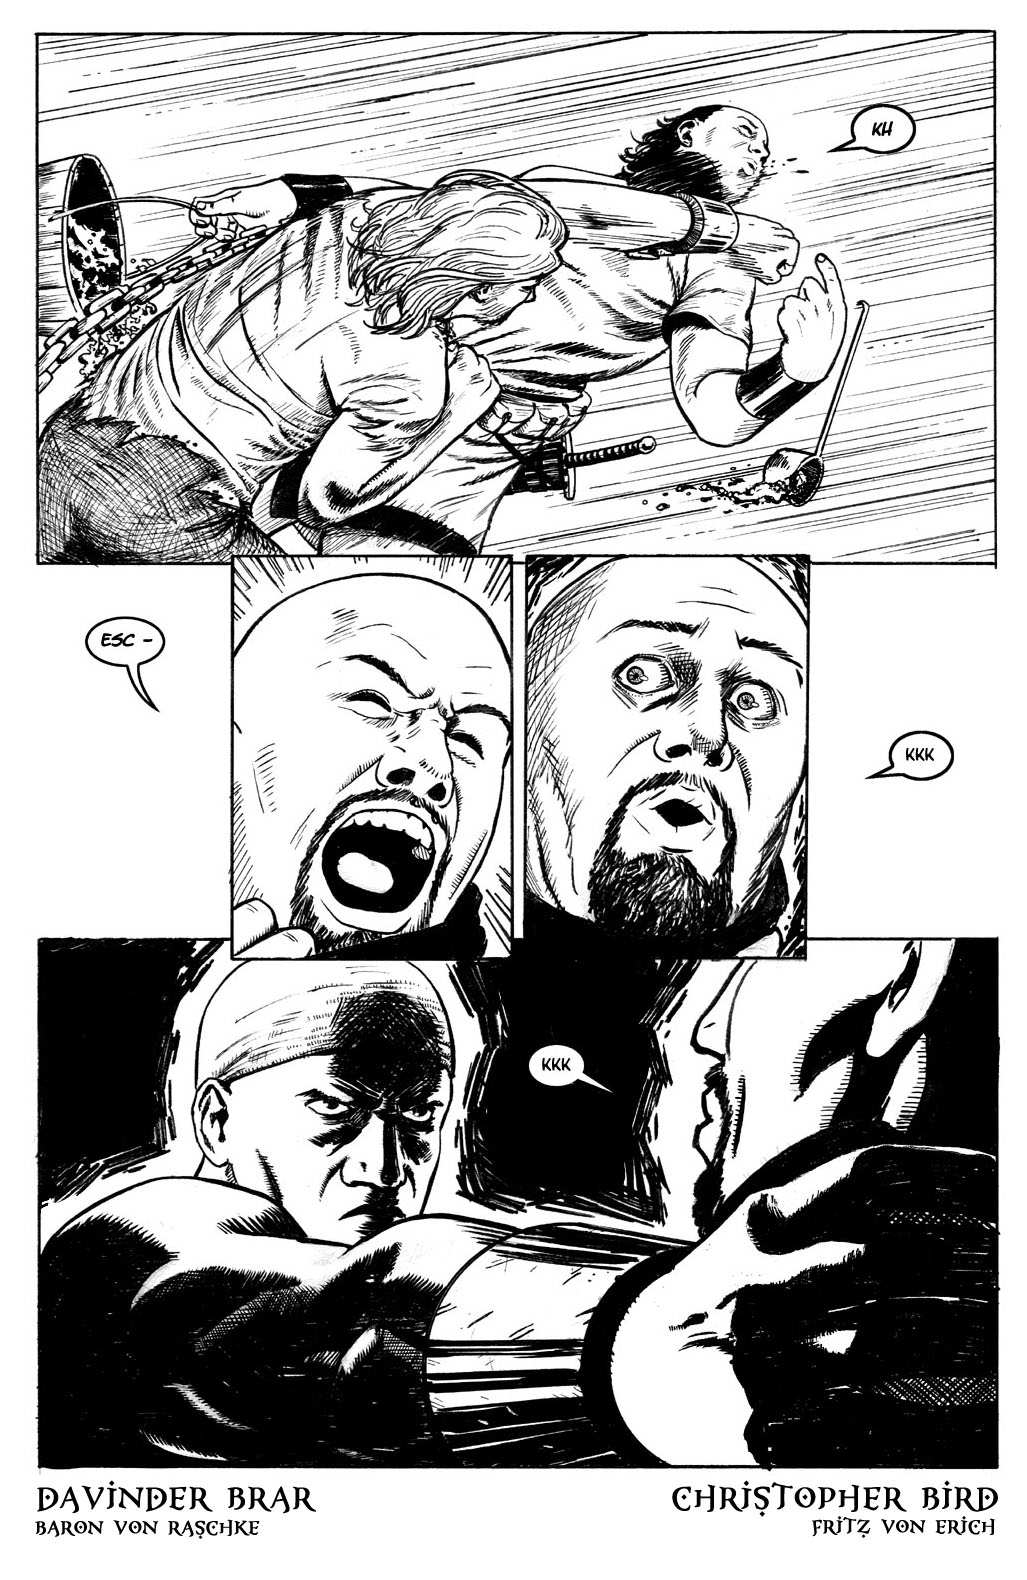 Book 2, page 15